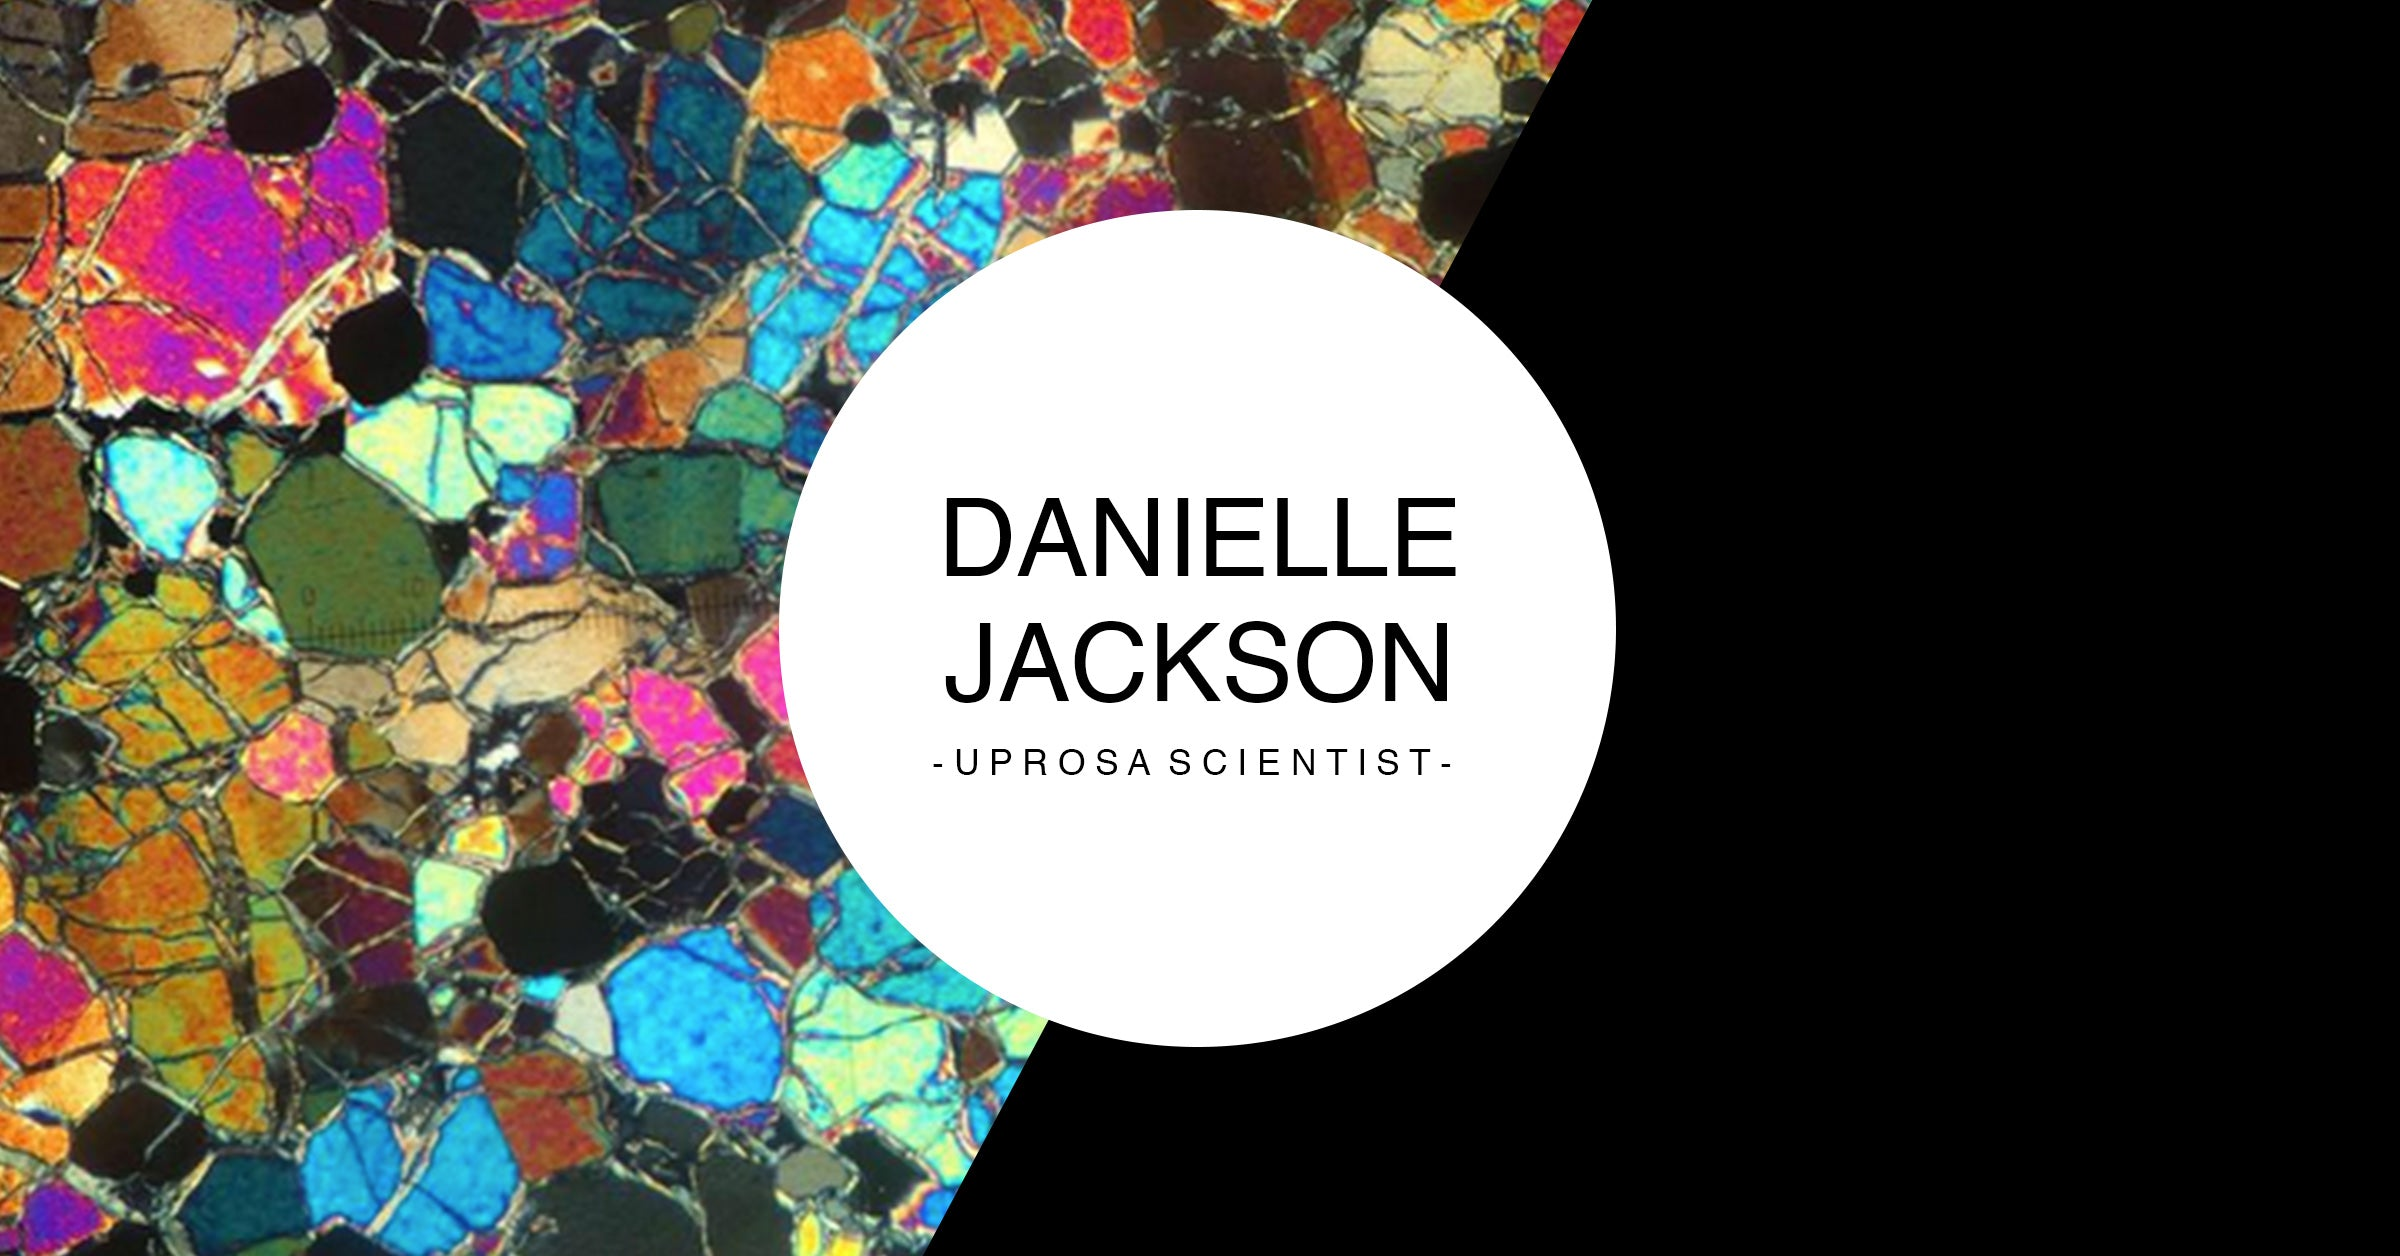 Danielle Jackson - UPROSA Scientist Collection